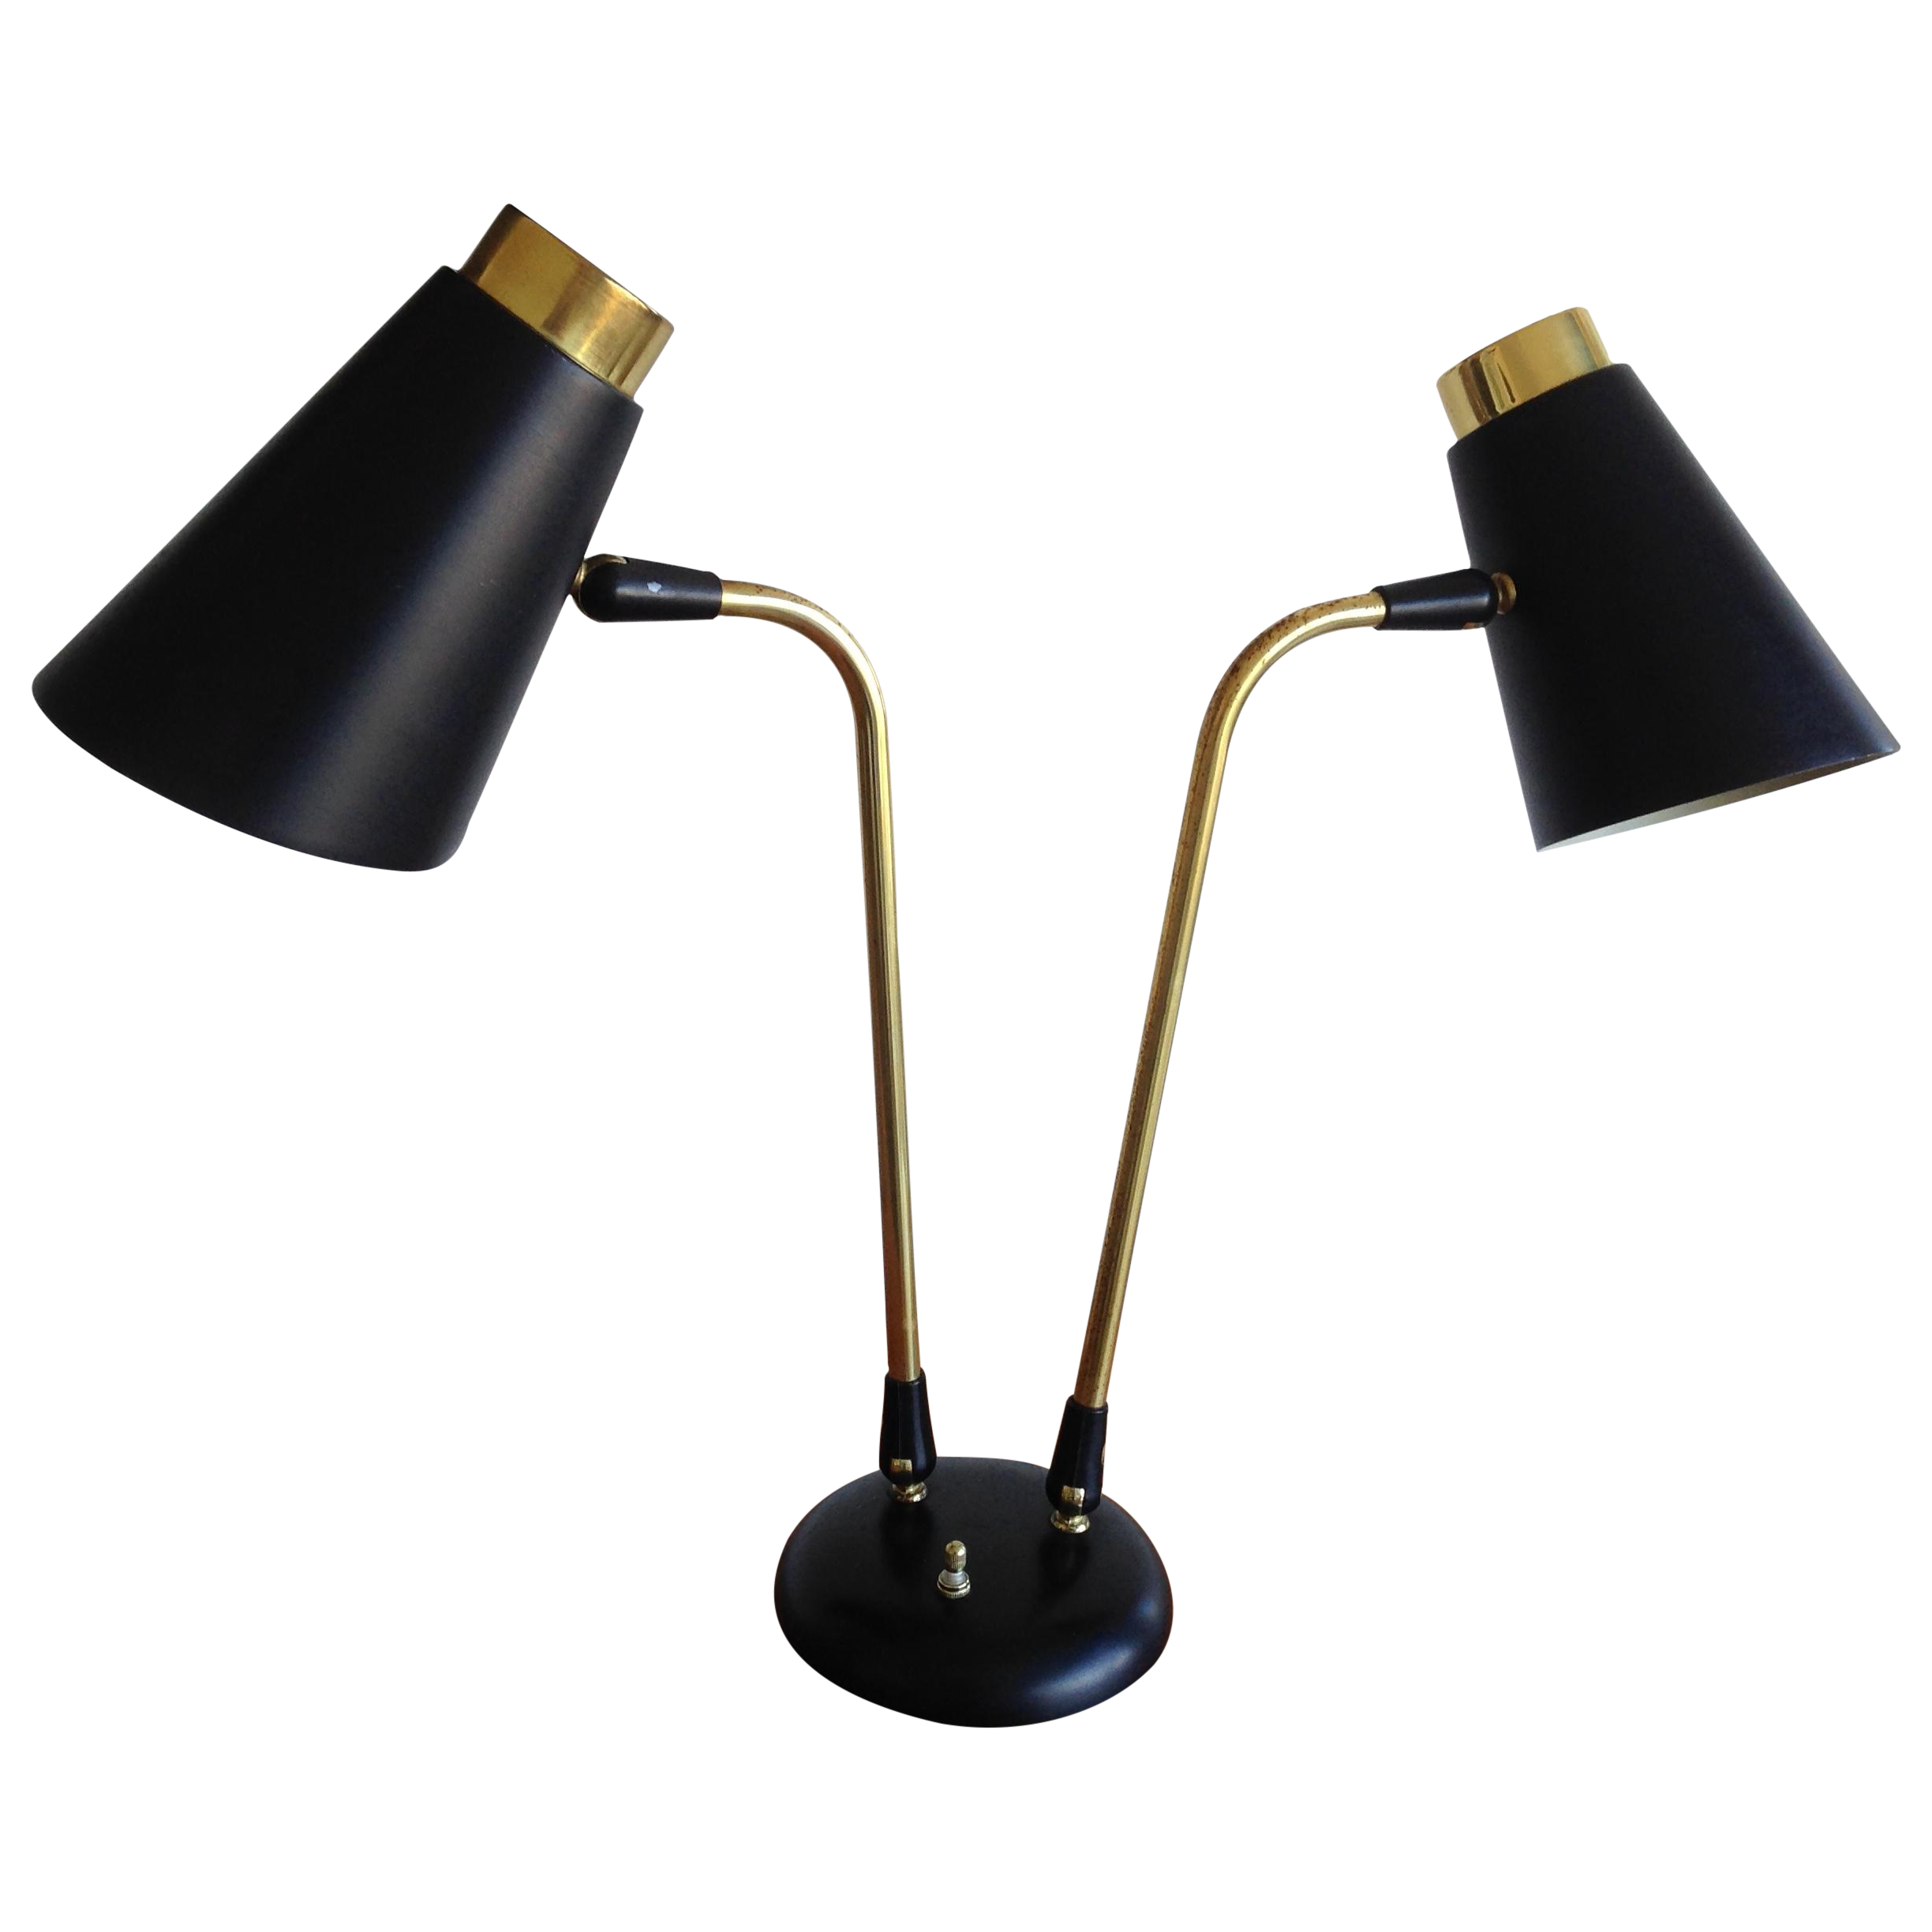 For Sale Black Mid Century Desk Lamp By Ewa Varnamo 1950s In 2020 Desk Lamp Mid Century Desk Lamp